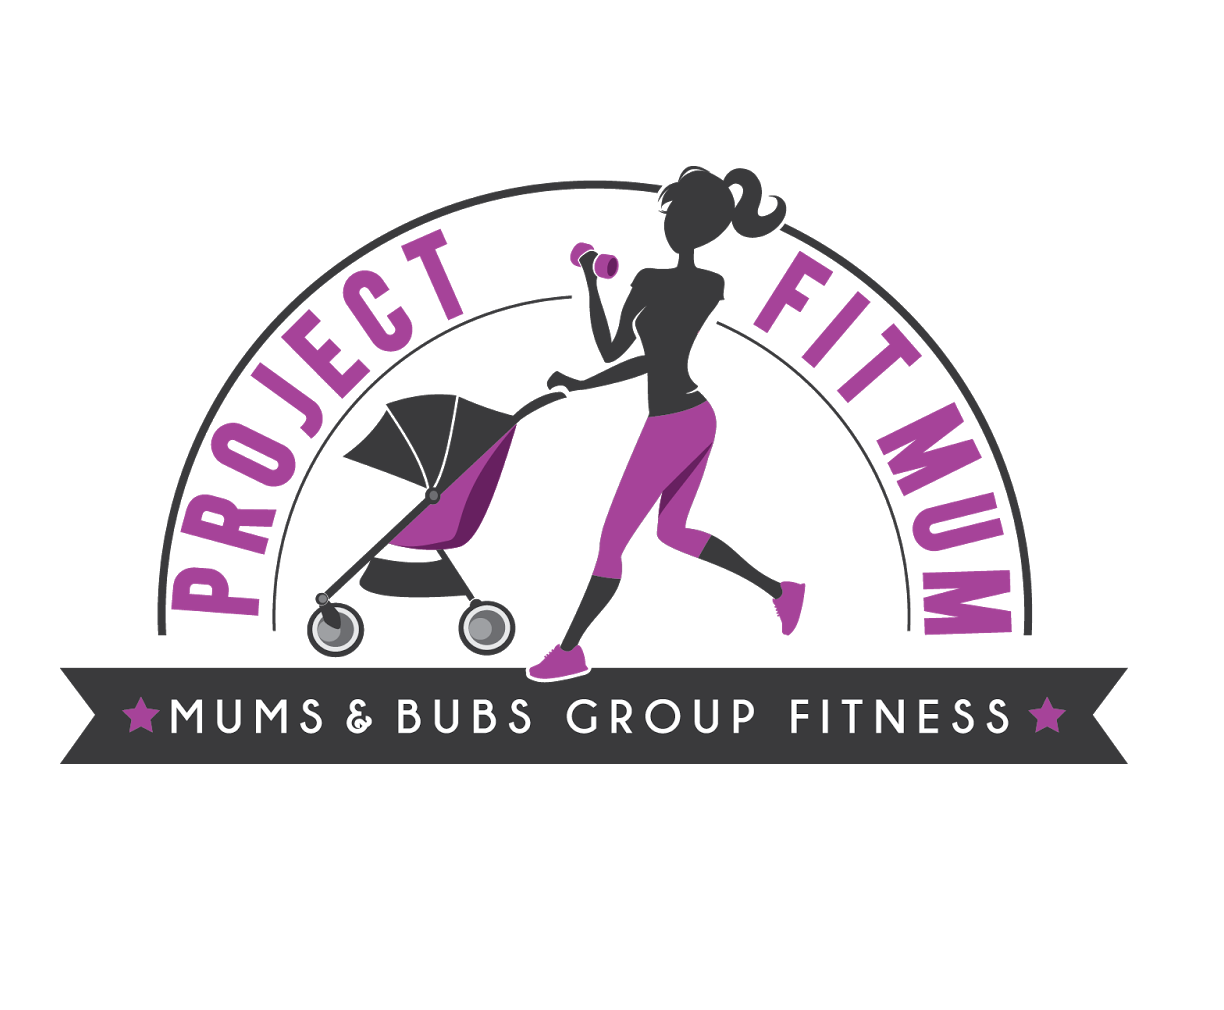 Project Fit Mum